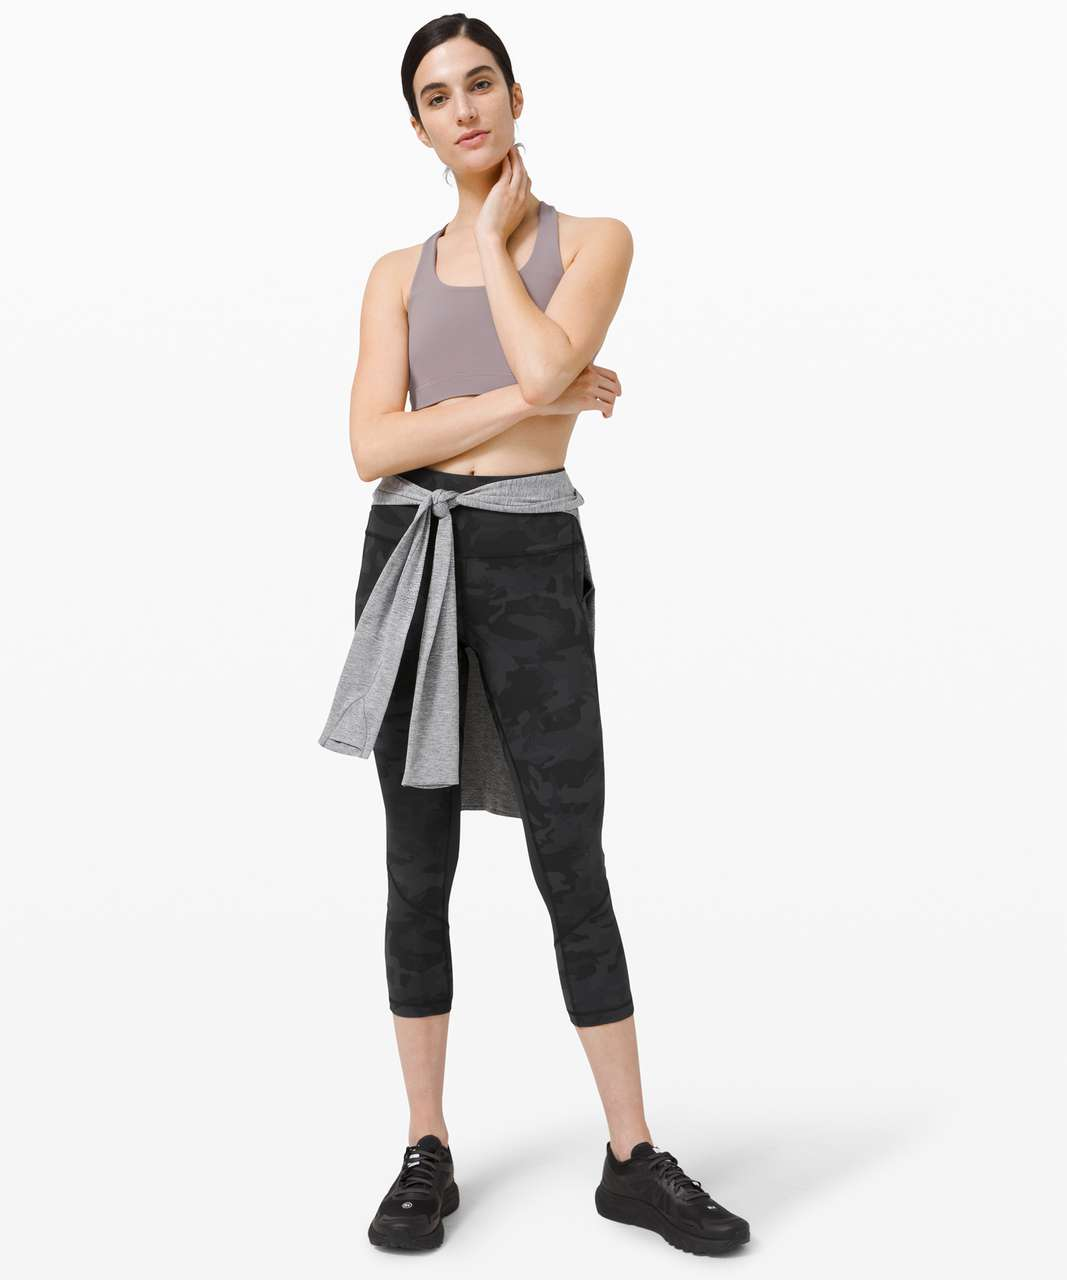 """Lululemon Pace Rival High-Rise Crop 22"""" - Incognito Camo Multi Grey / Black"""